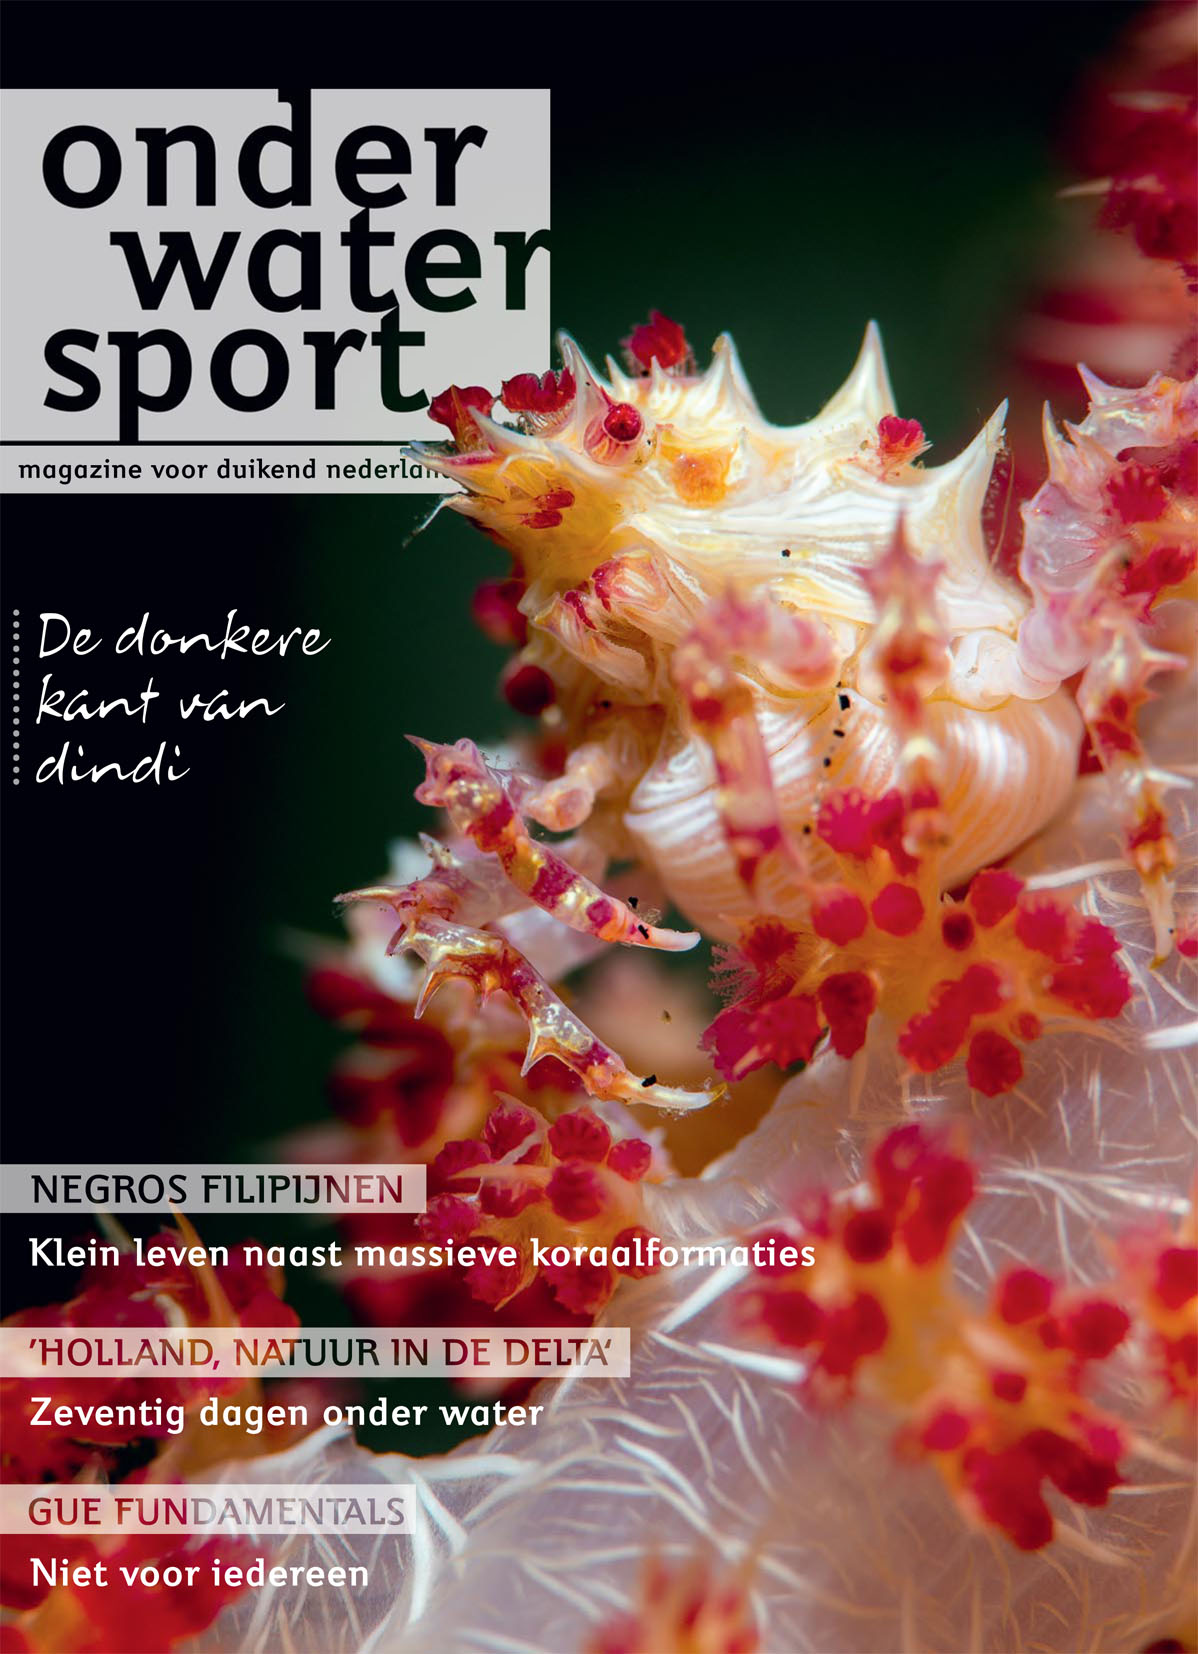 Onderwatersport October 2015